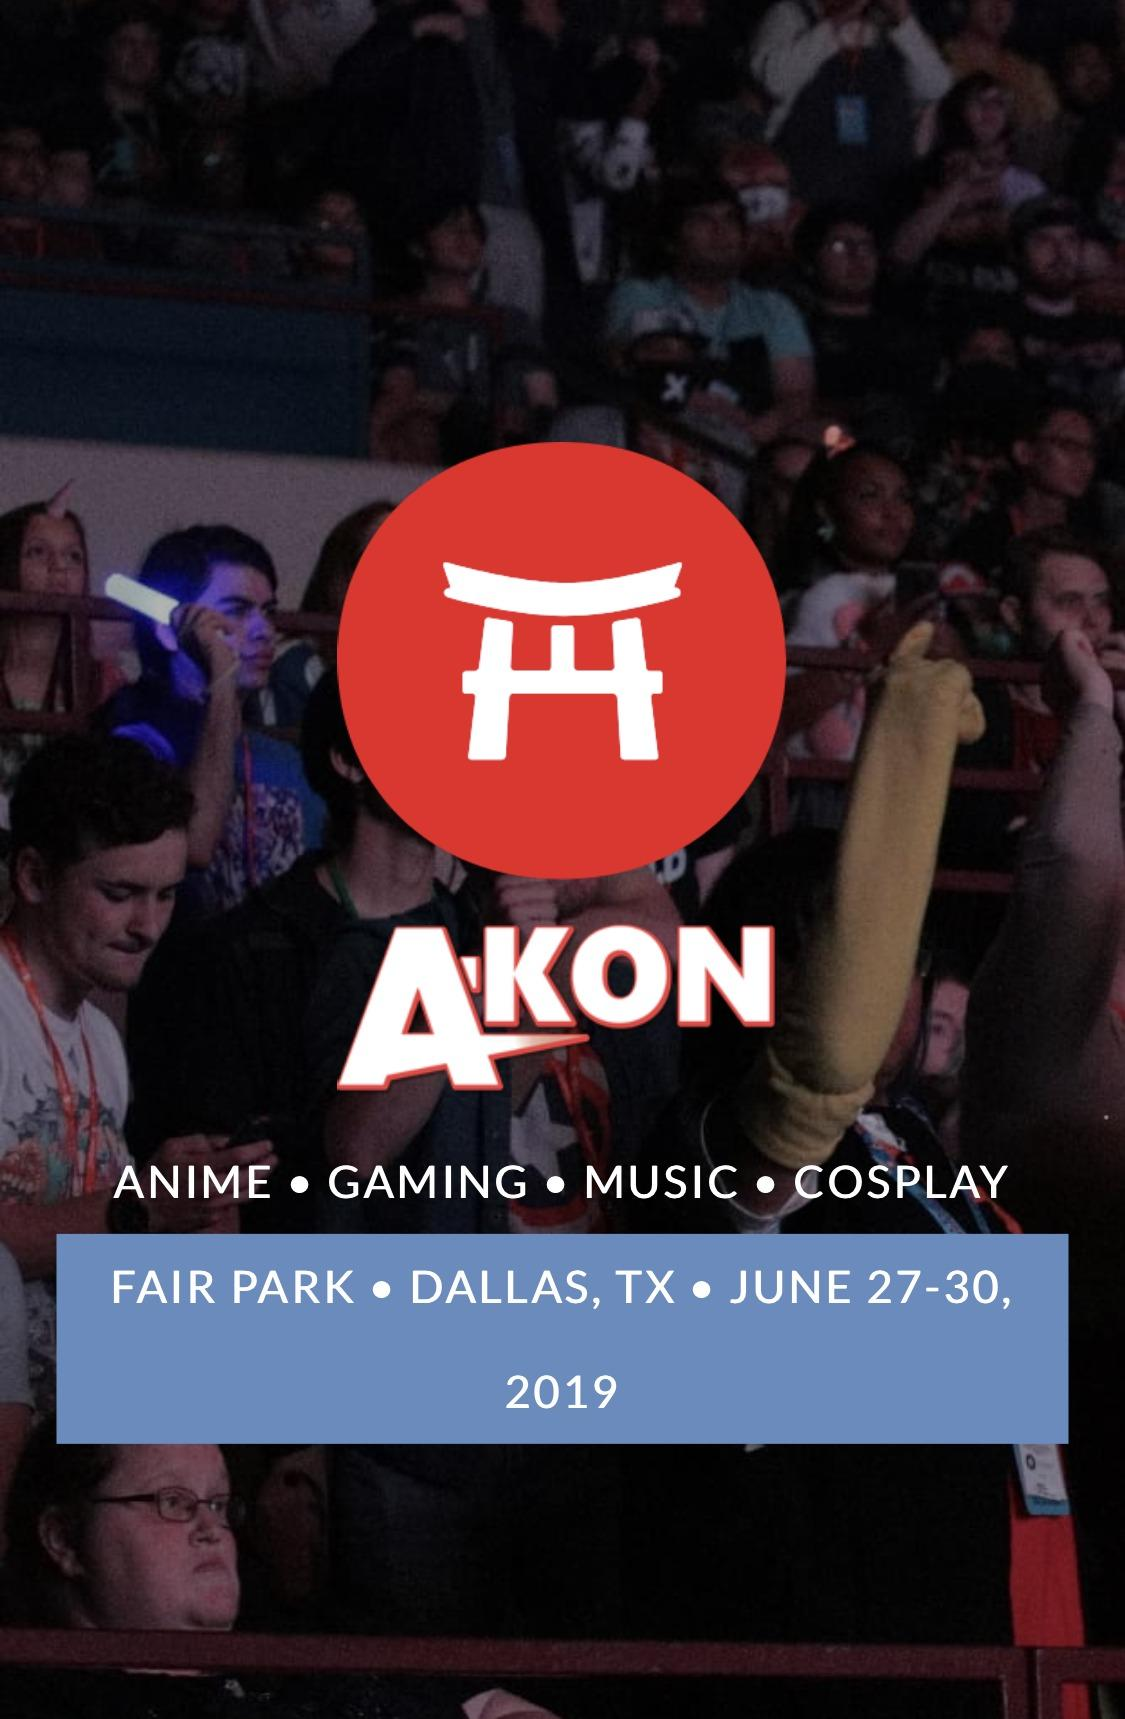 A-Kon acquired by outside investor, moves venues